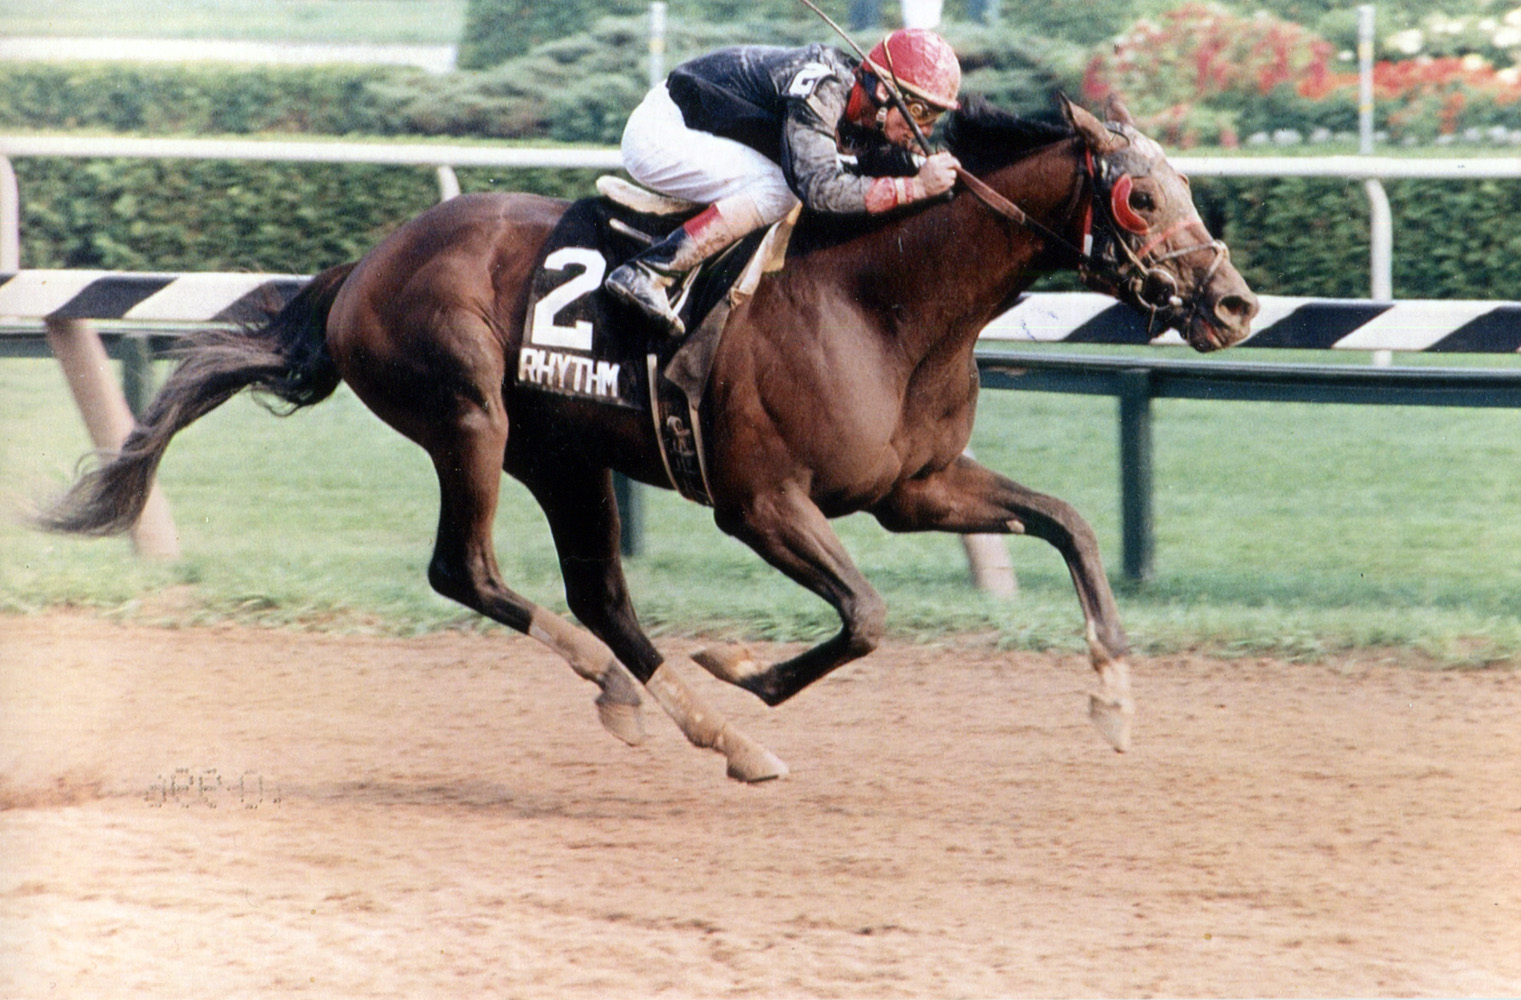 Craig Perret and Rhythm winning the 1990 Travers Stakes at Saratoga (Mike Pender/Museum Collection)